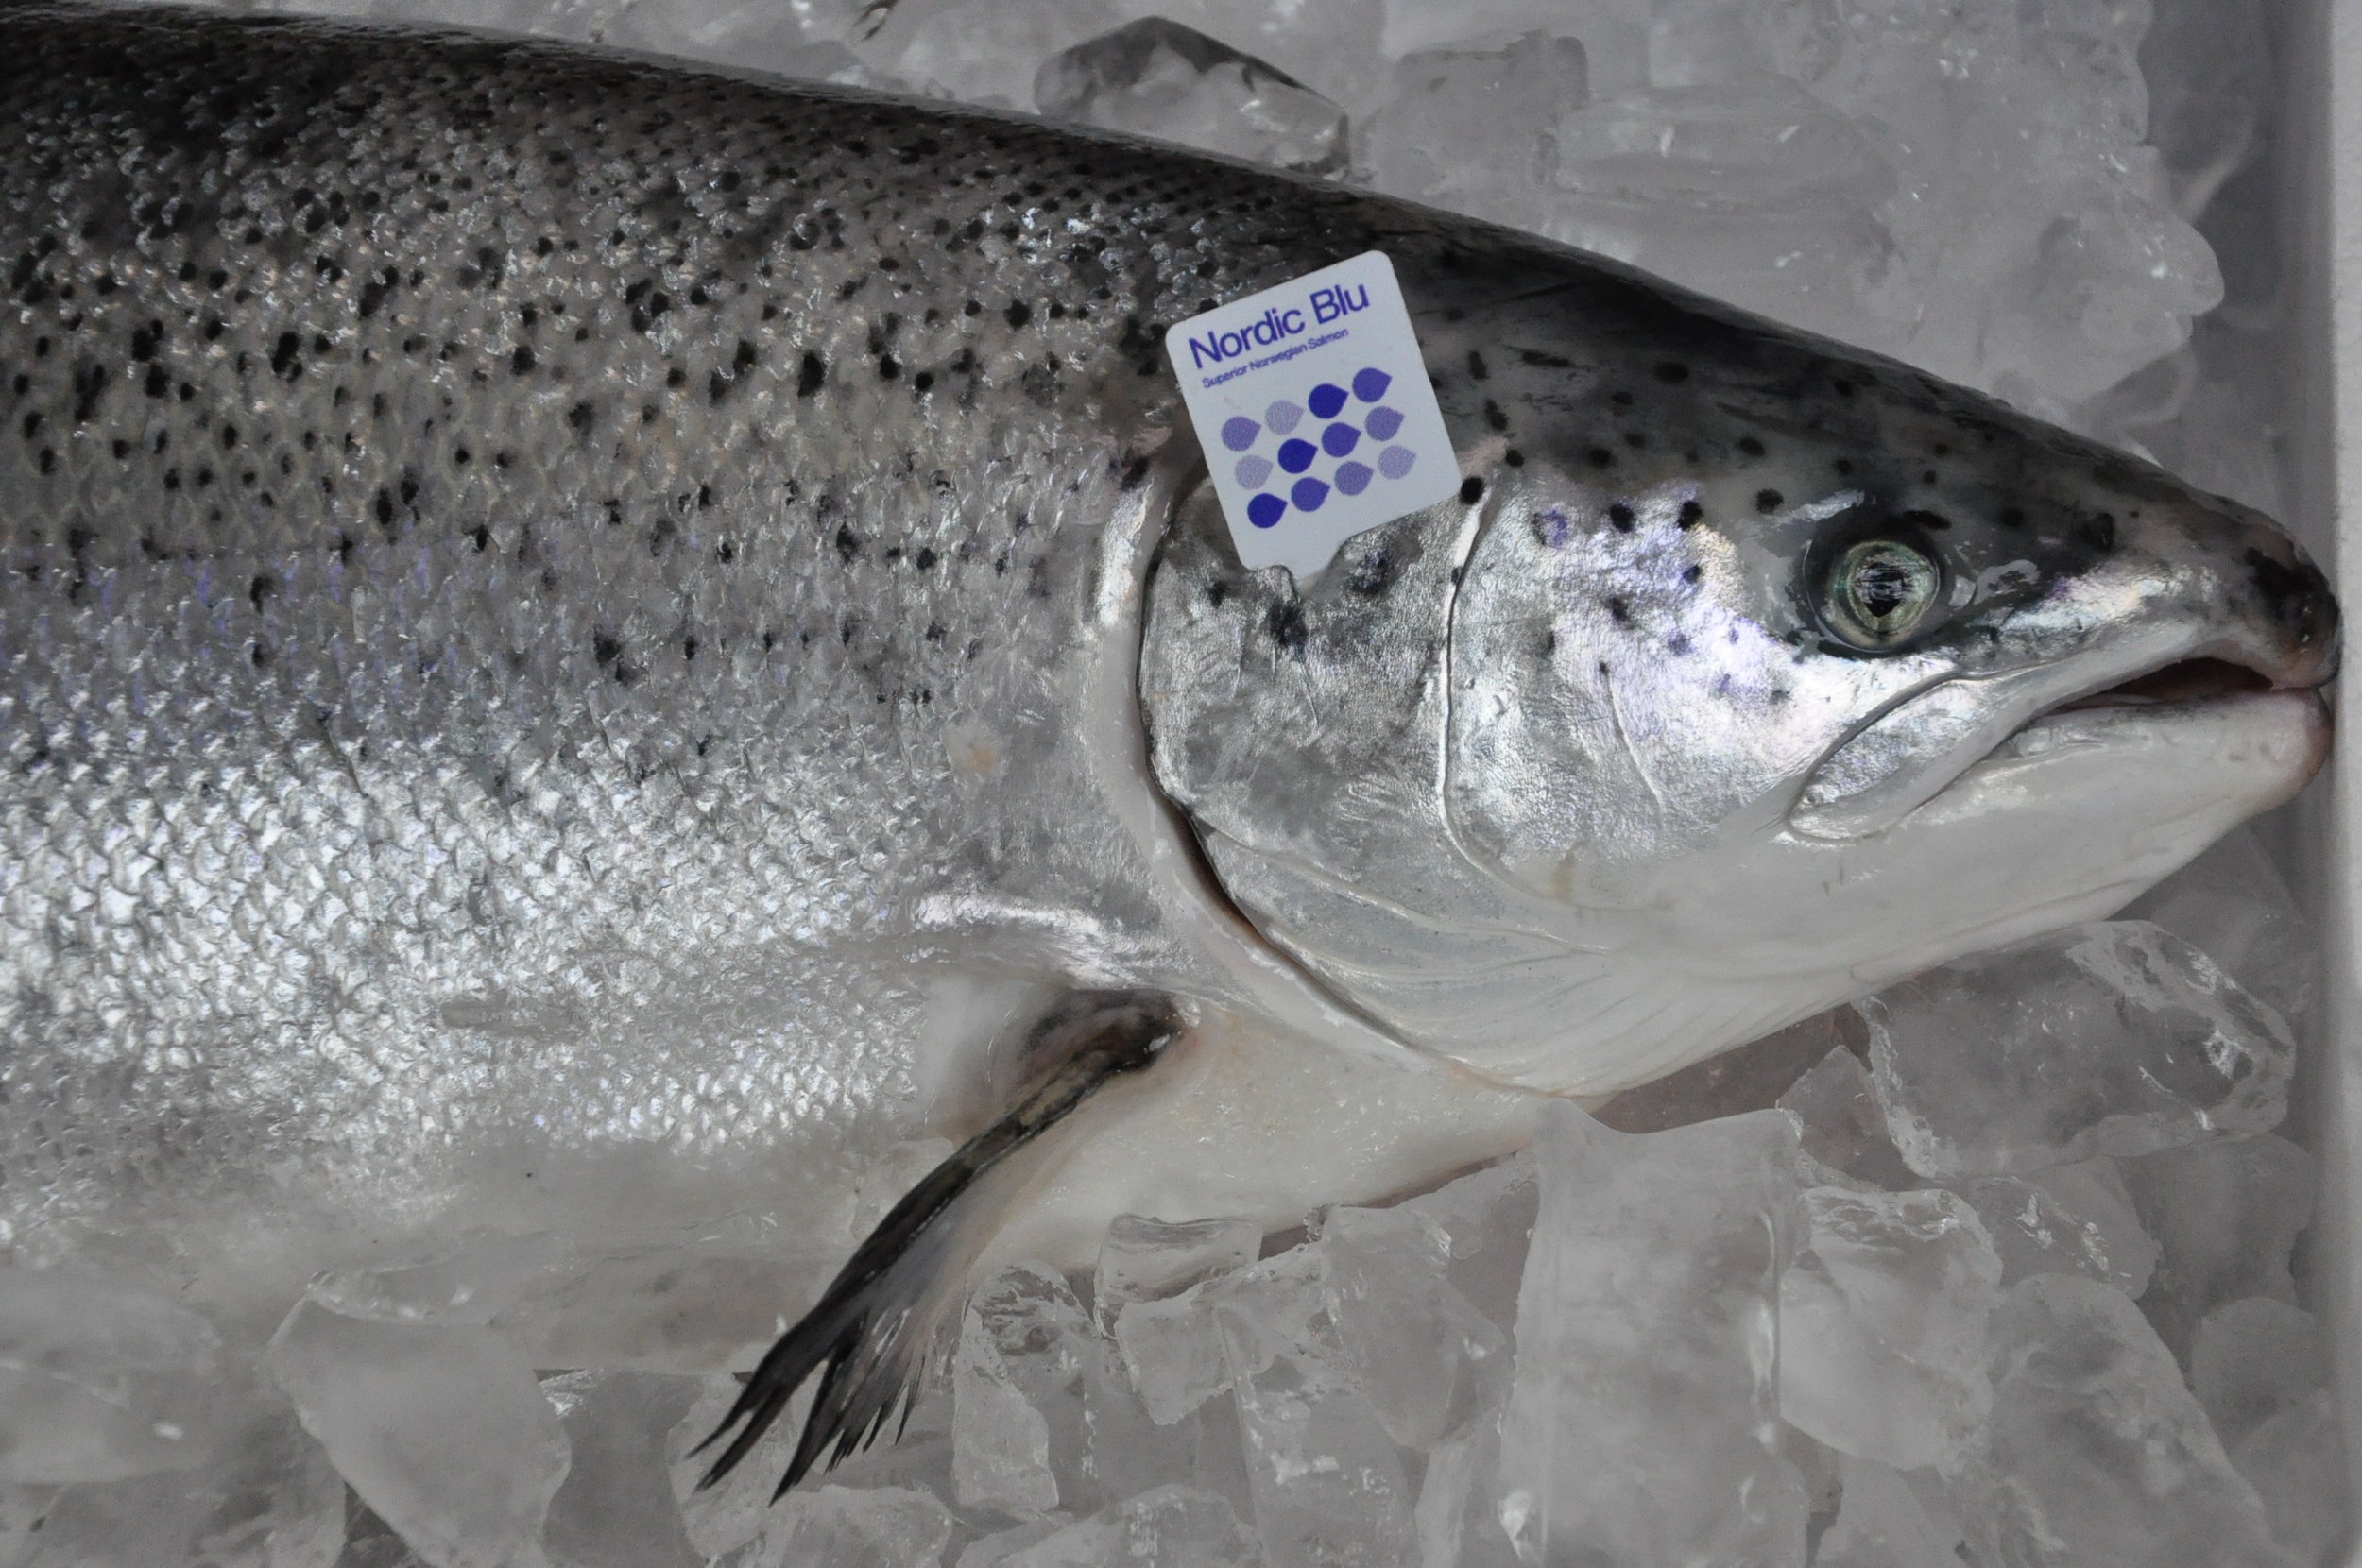 Feed innovations are key to the fish's leading environmental rankings. Nordic Blu Salmon are fed a custom diet with a higher concentration of Omega-3 fatty acids than conventional feed and with only 17.3% marine content.